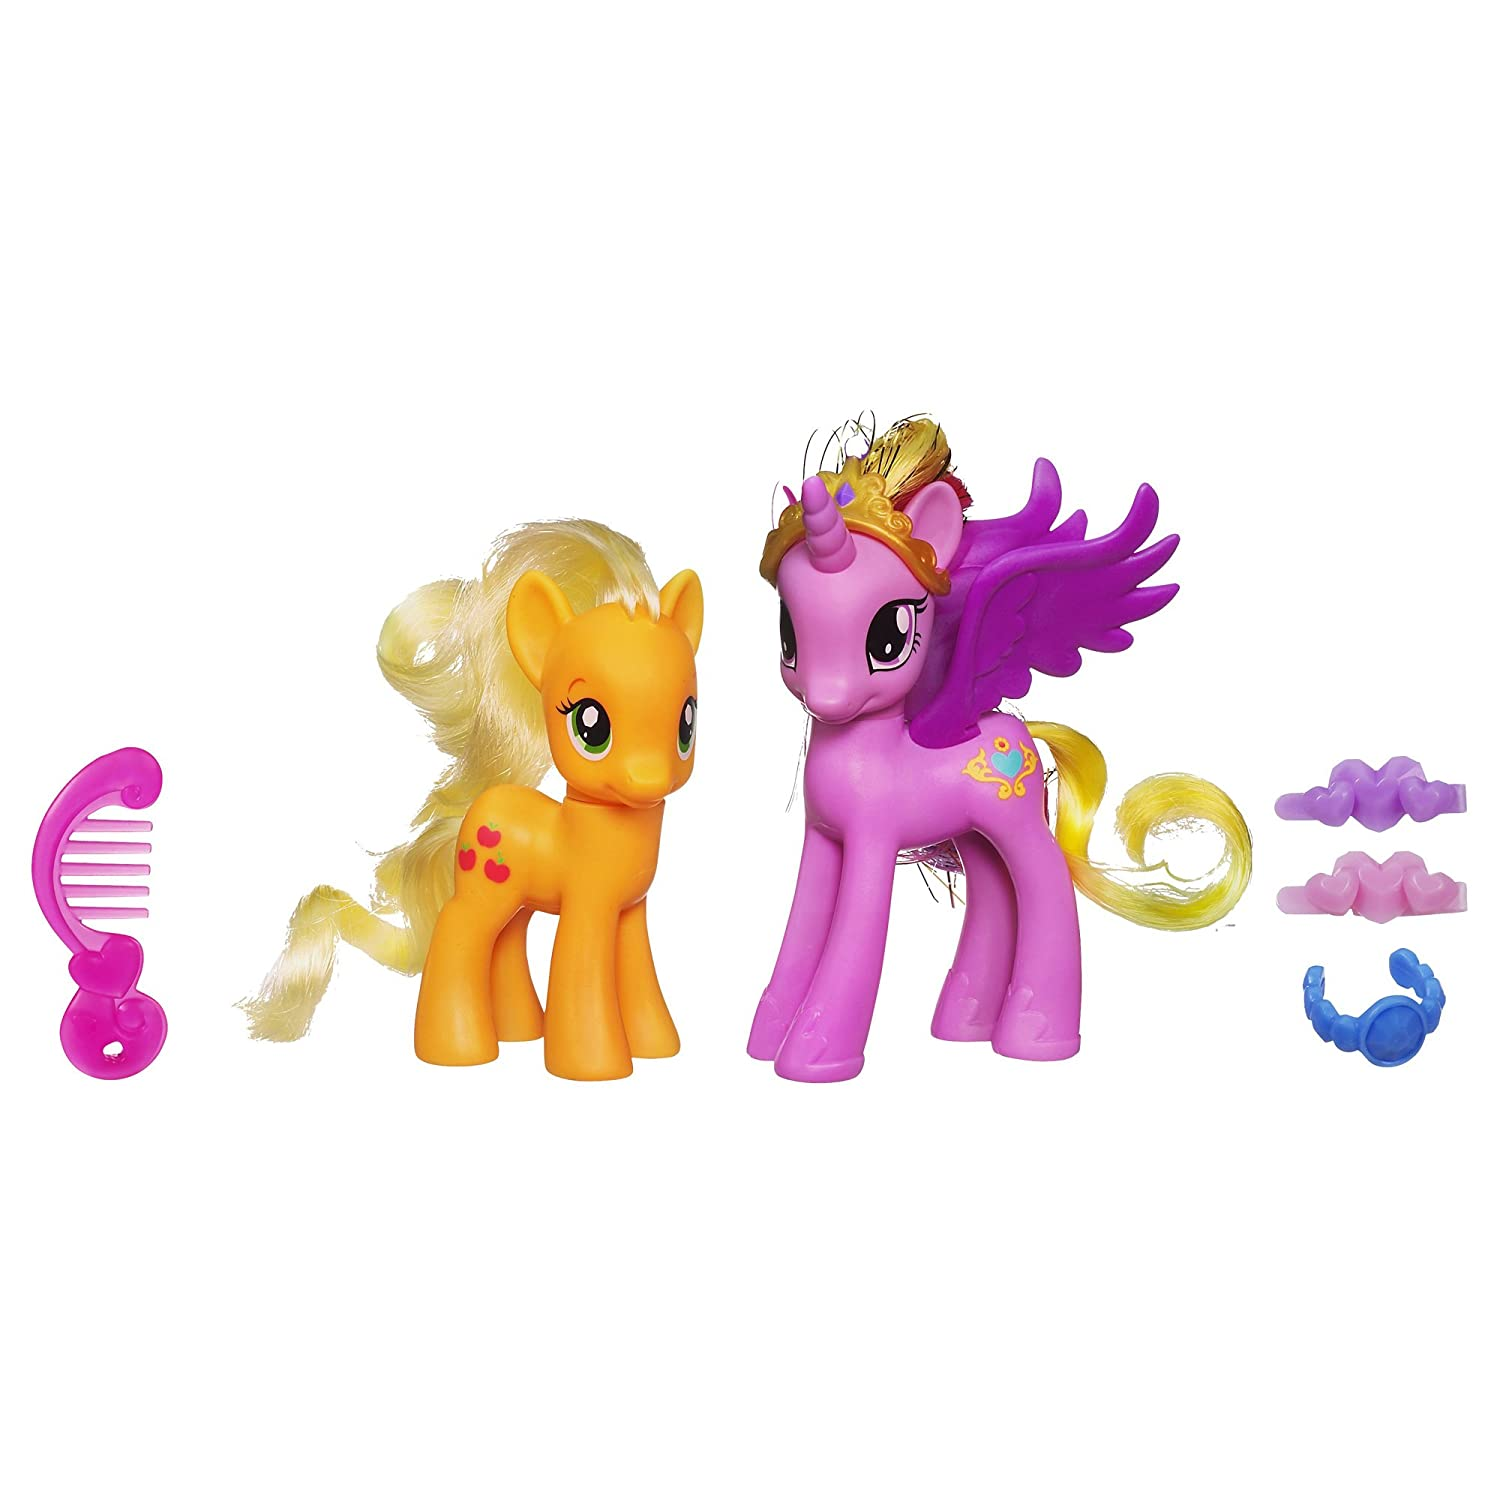 Amazon com my little pony princess cadance and applejack figures toys games